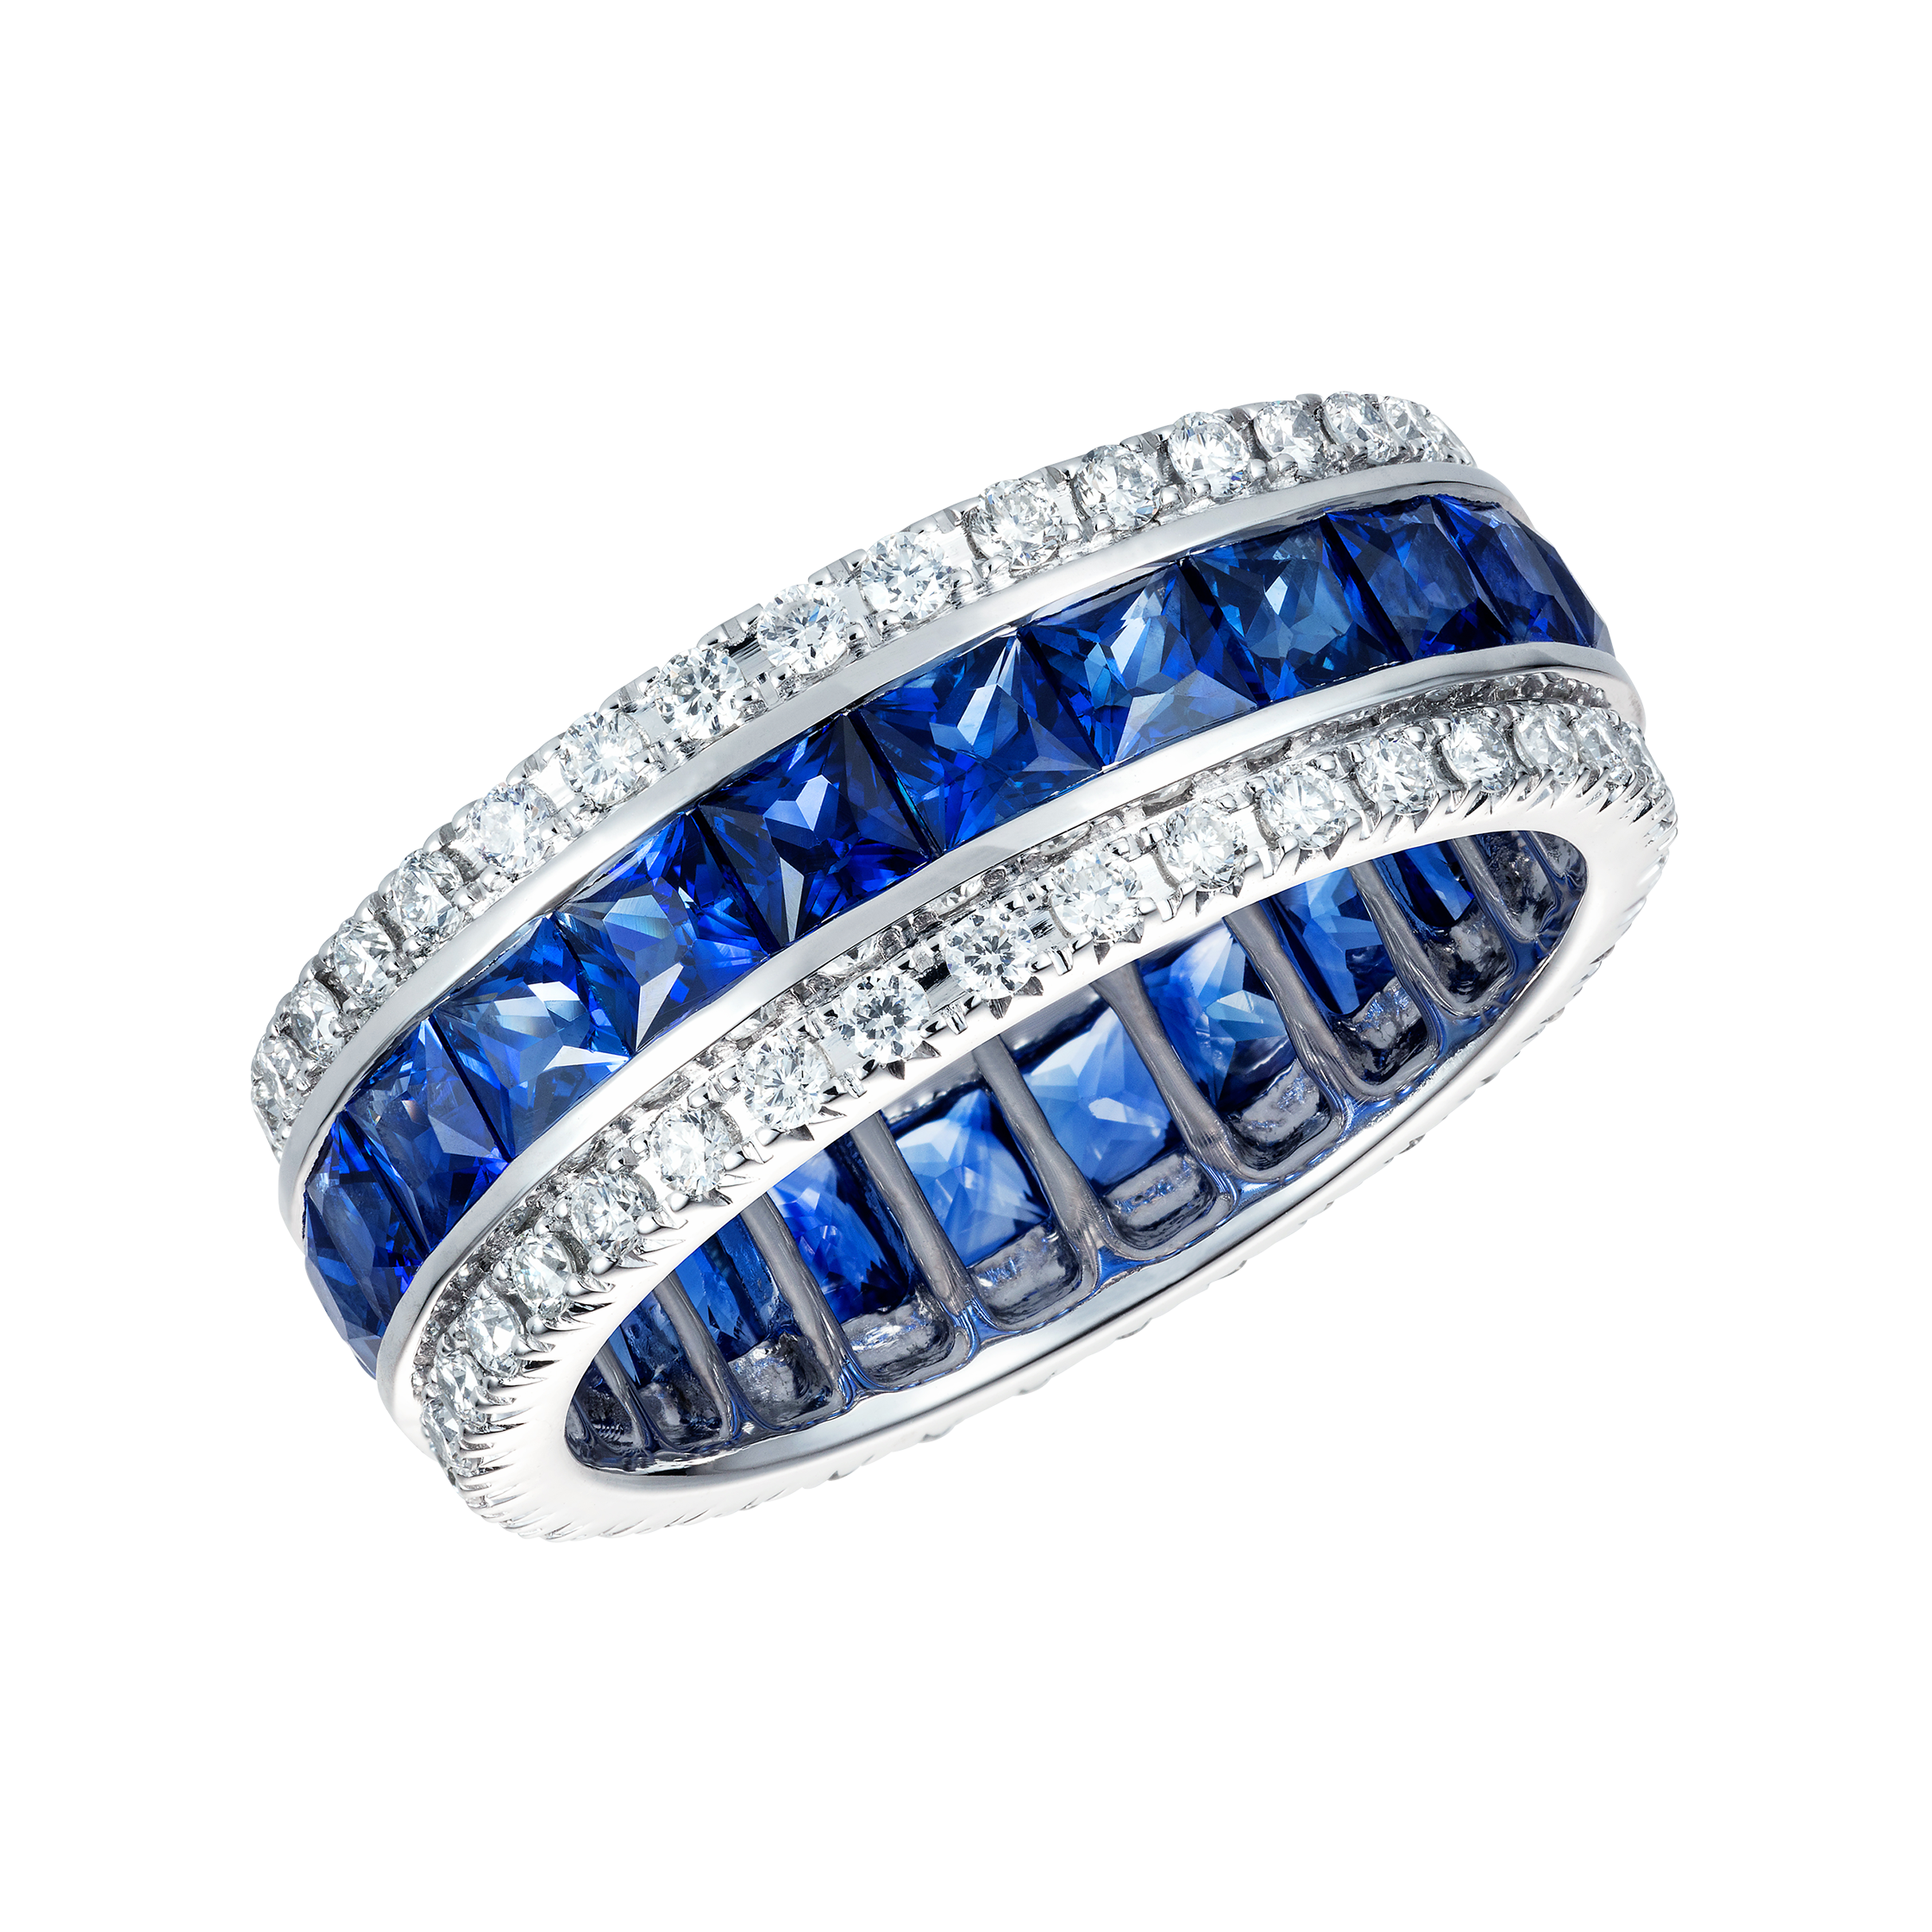 toronto eternity engagement bezel product set full band custom bands diamond jewellery